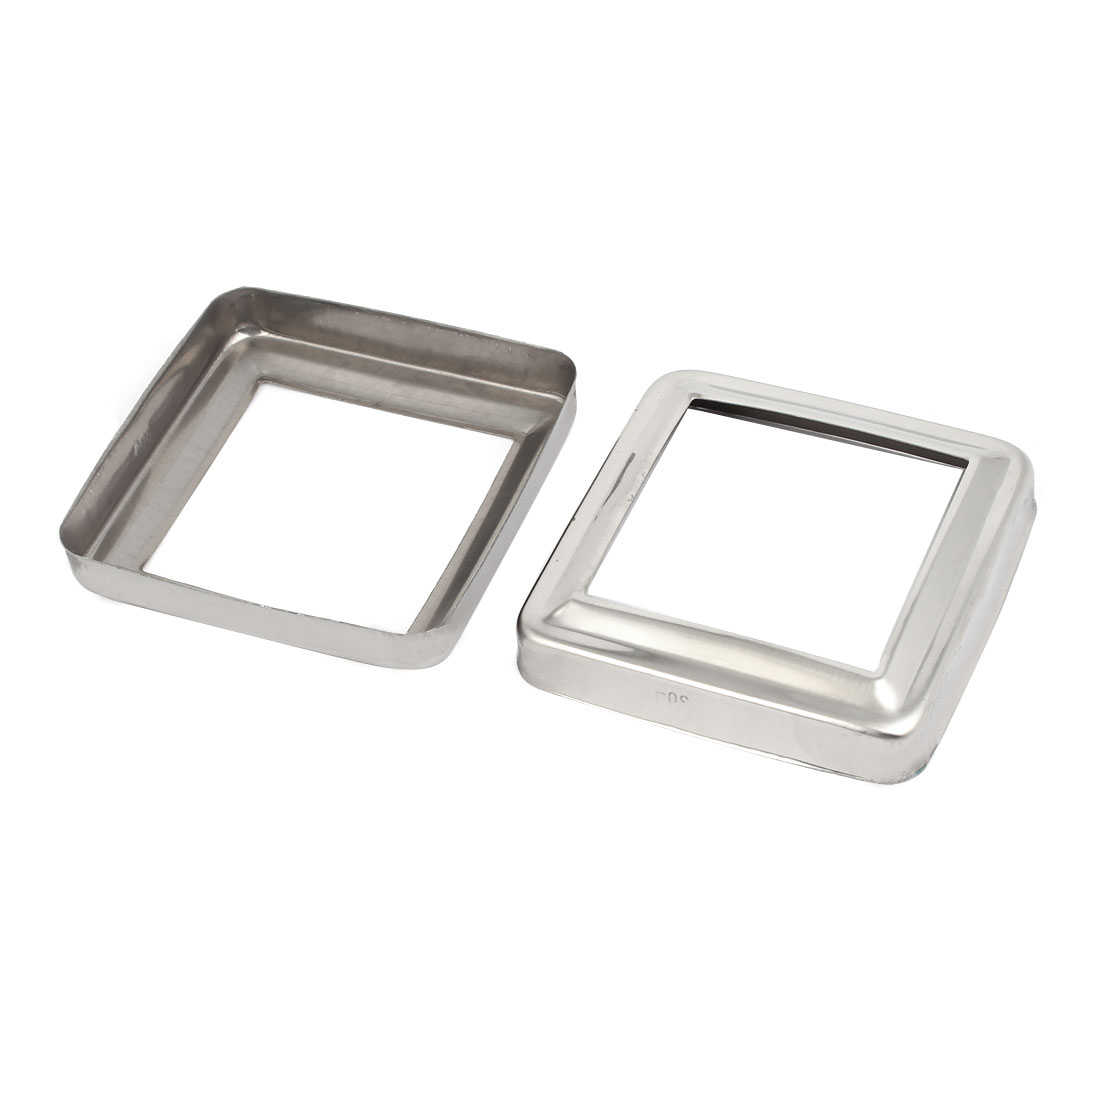 2pcs Stair Handrail Hand Rail 60mm x 60mm Post Plate Cover 304 Stainless Steel